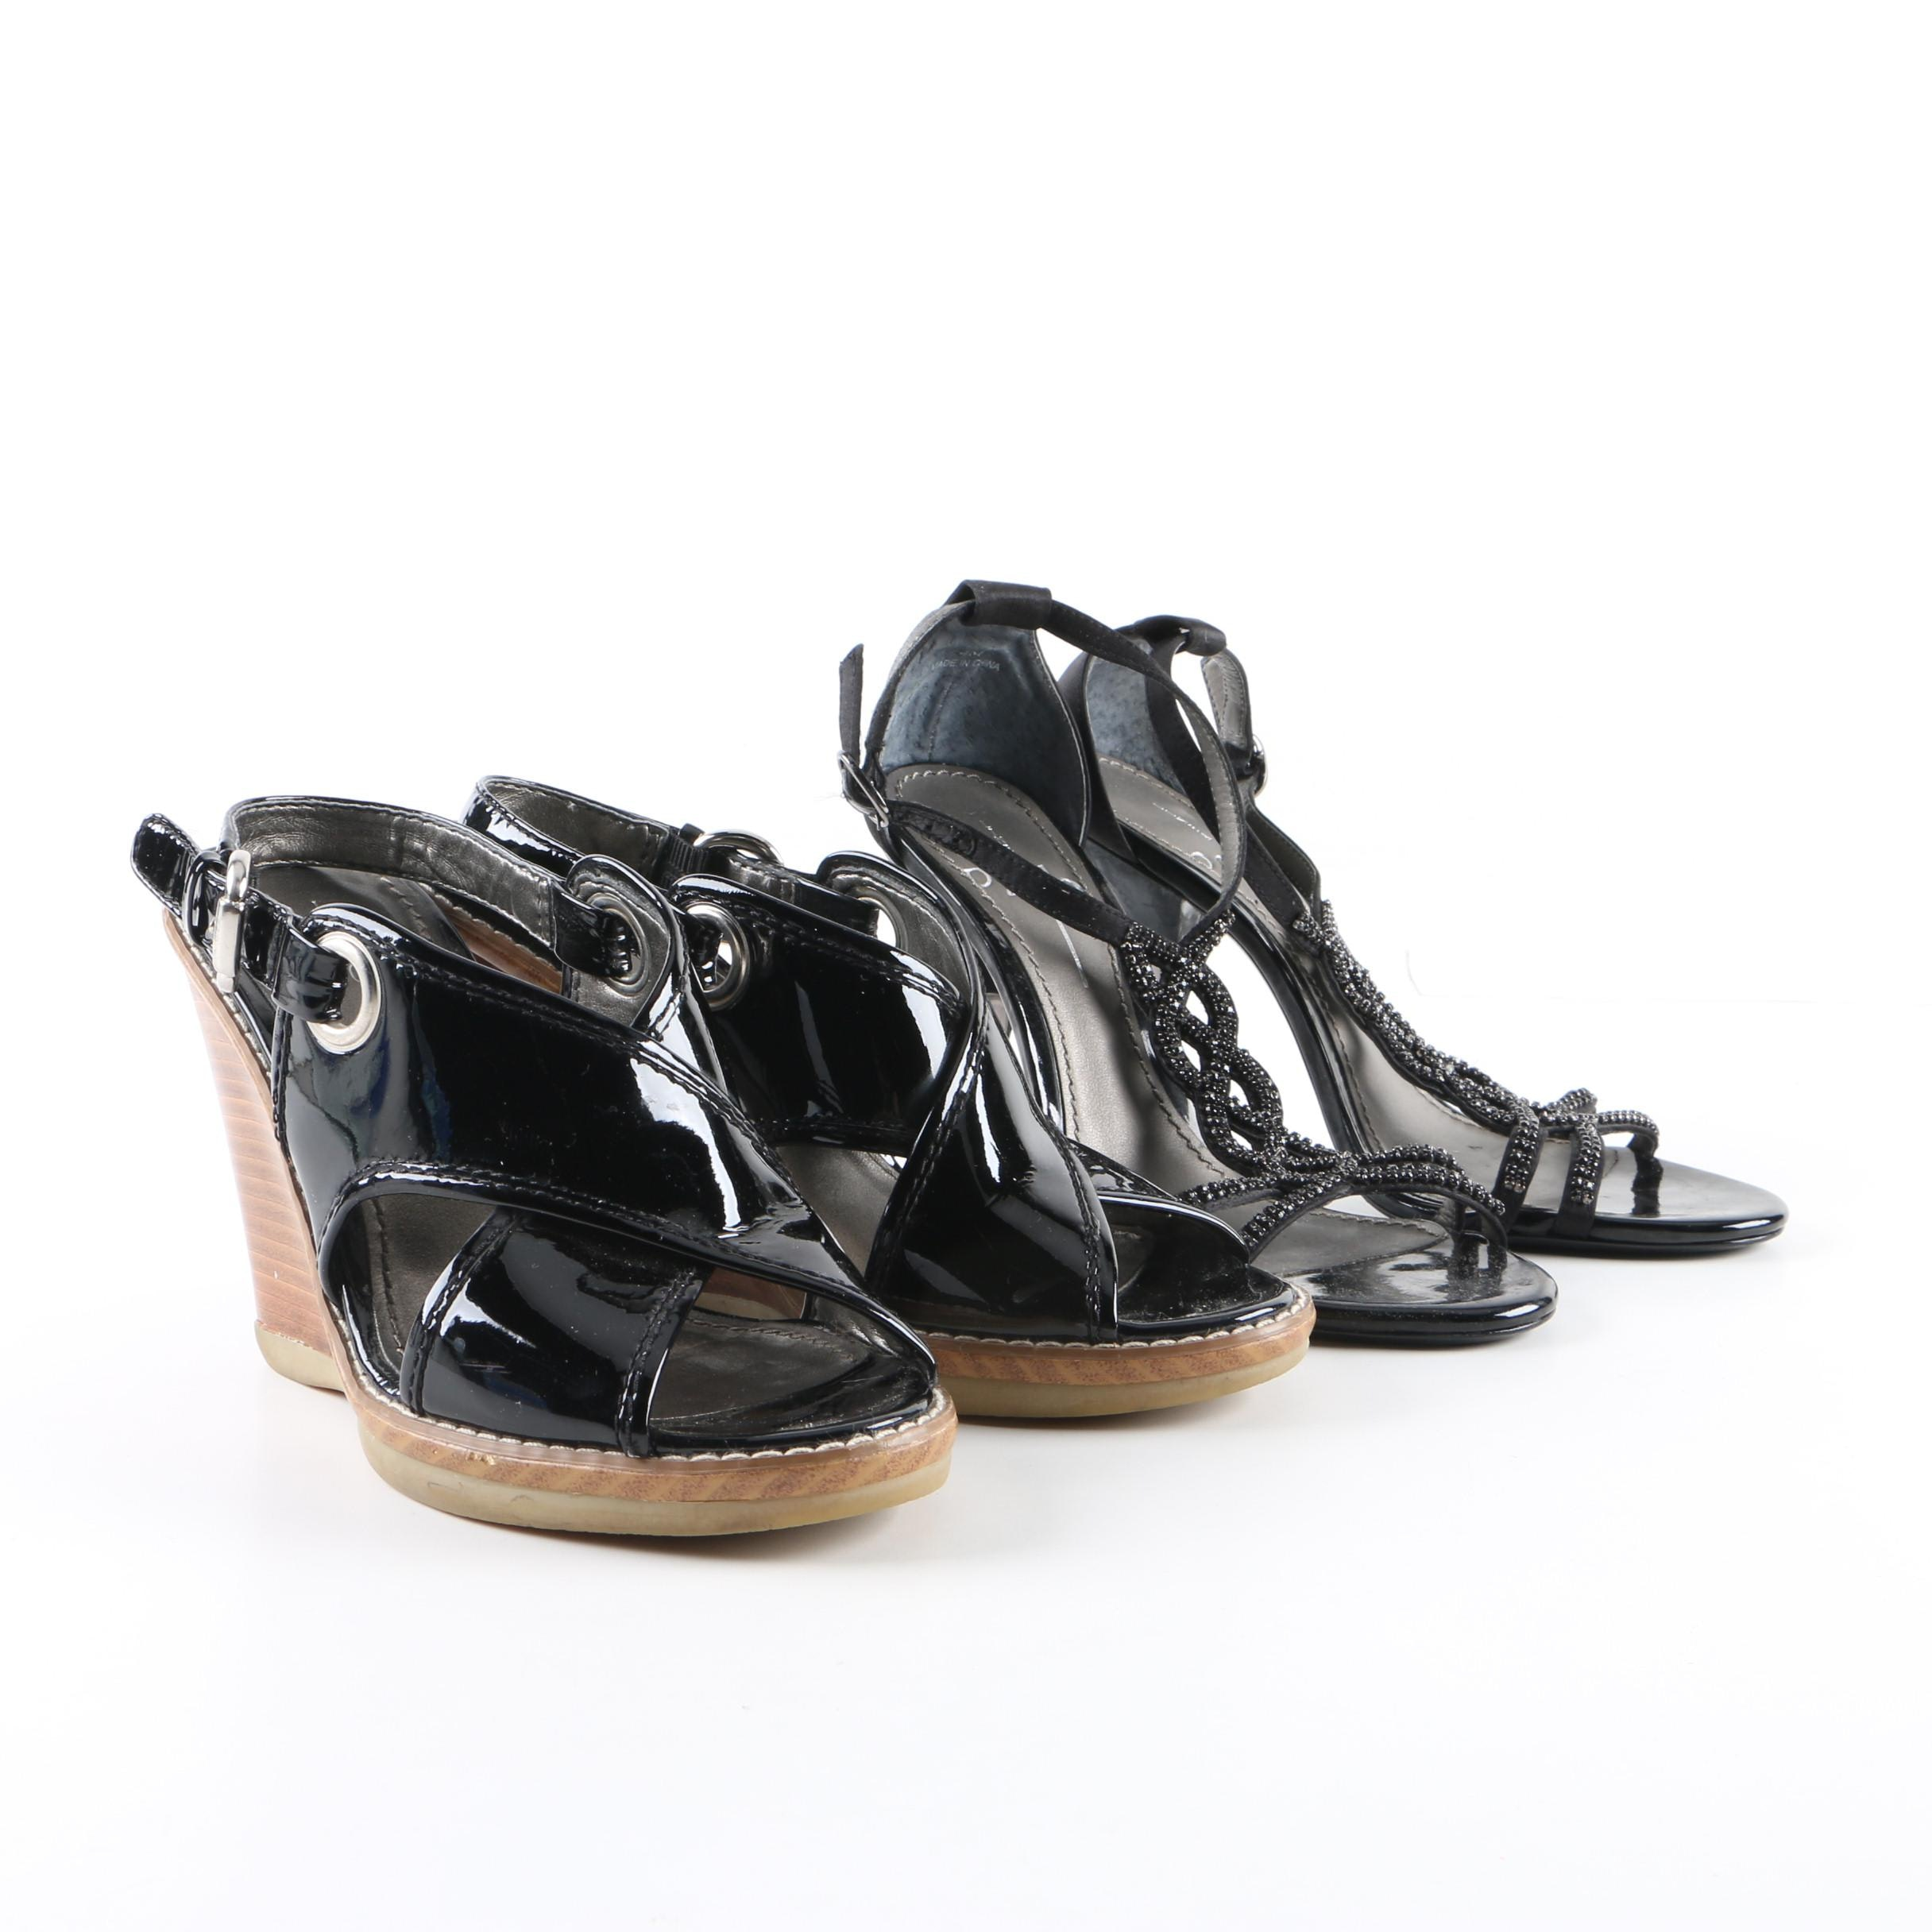 Linea Paolo Black Brisbane Wedge Slides and Glam Dress Sandals